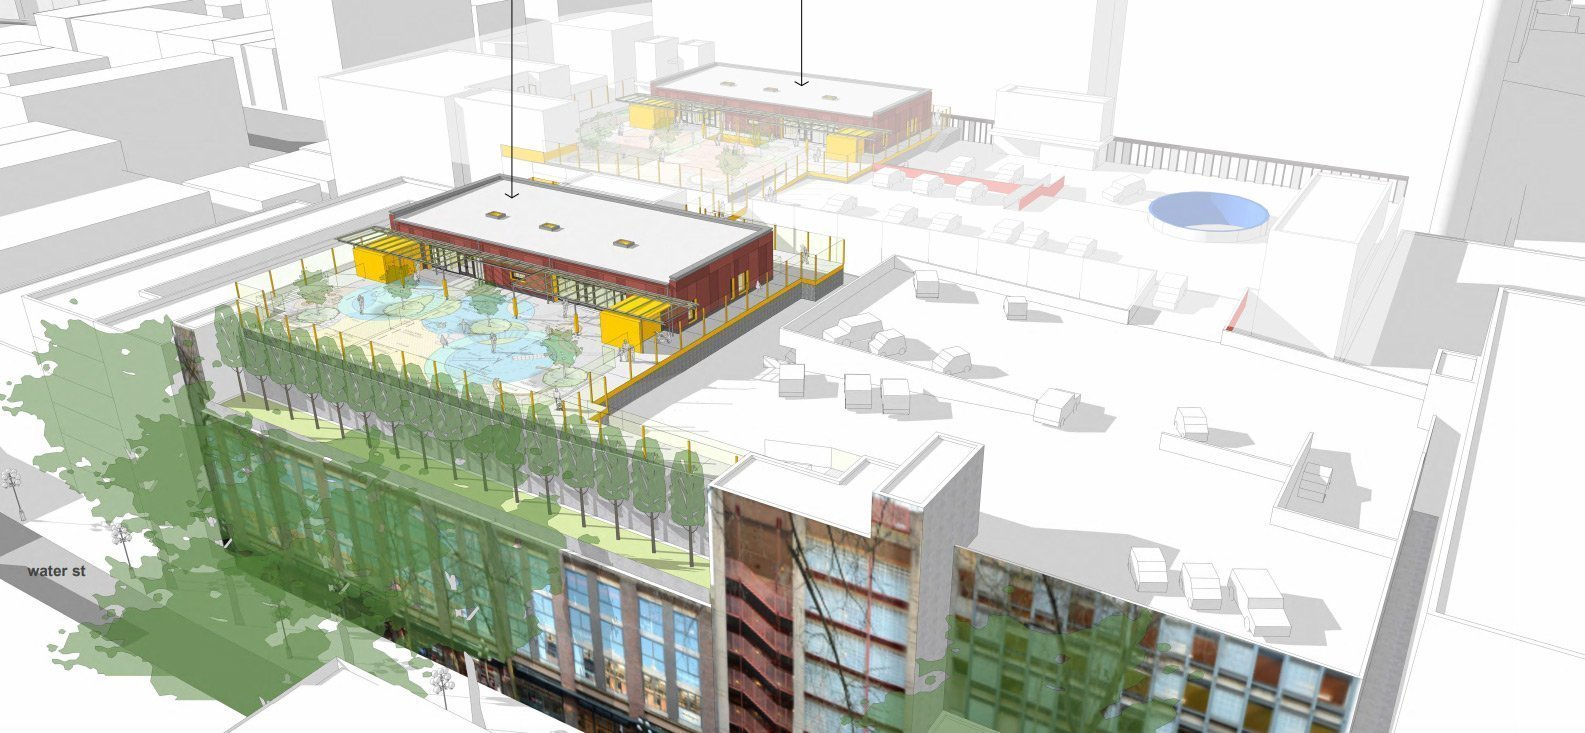 Gastown parkade daycare rendering